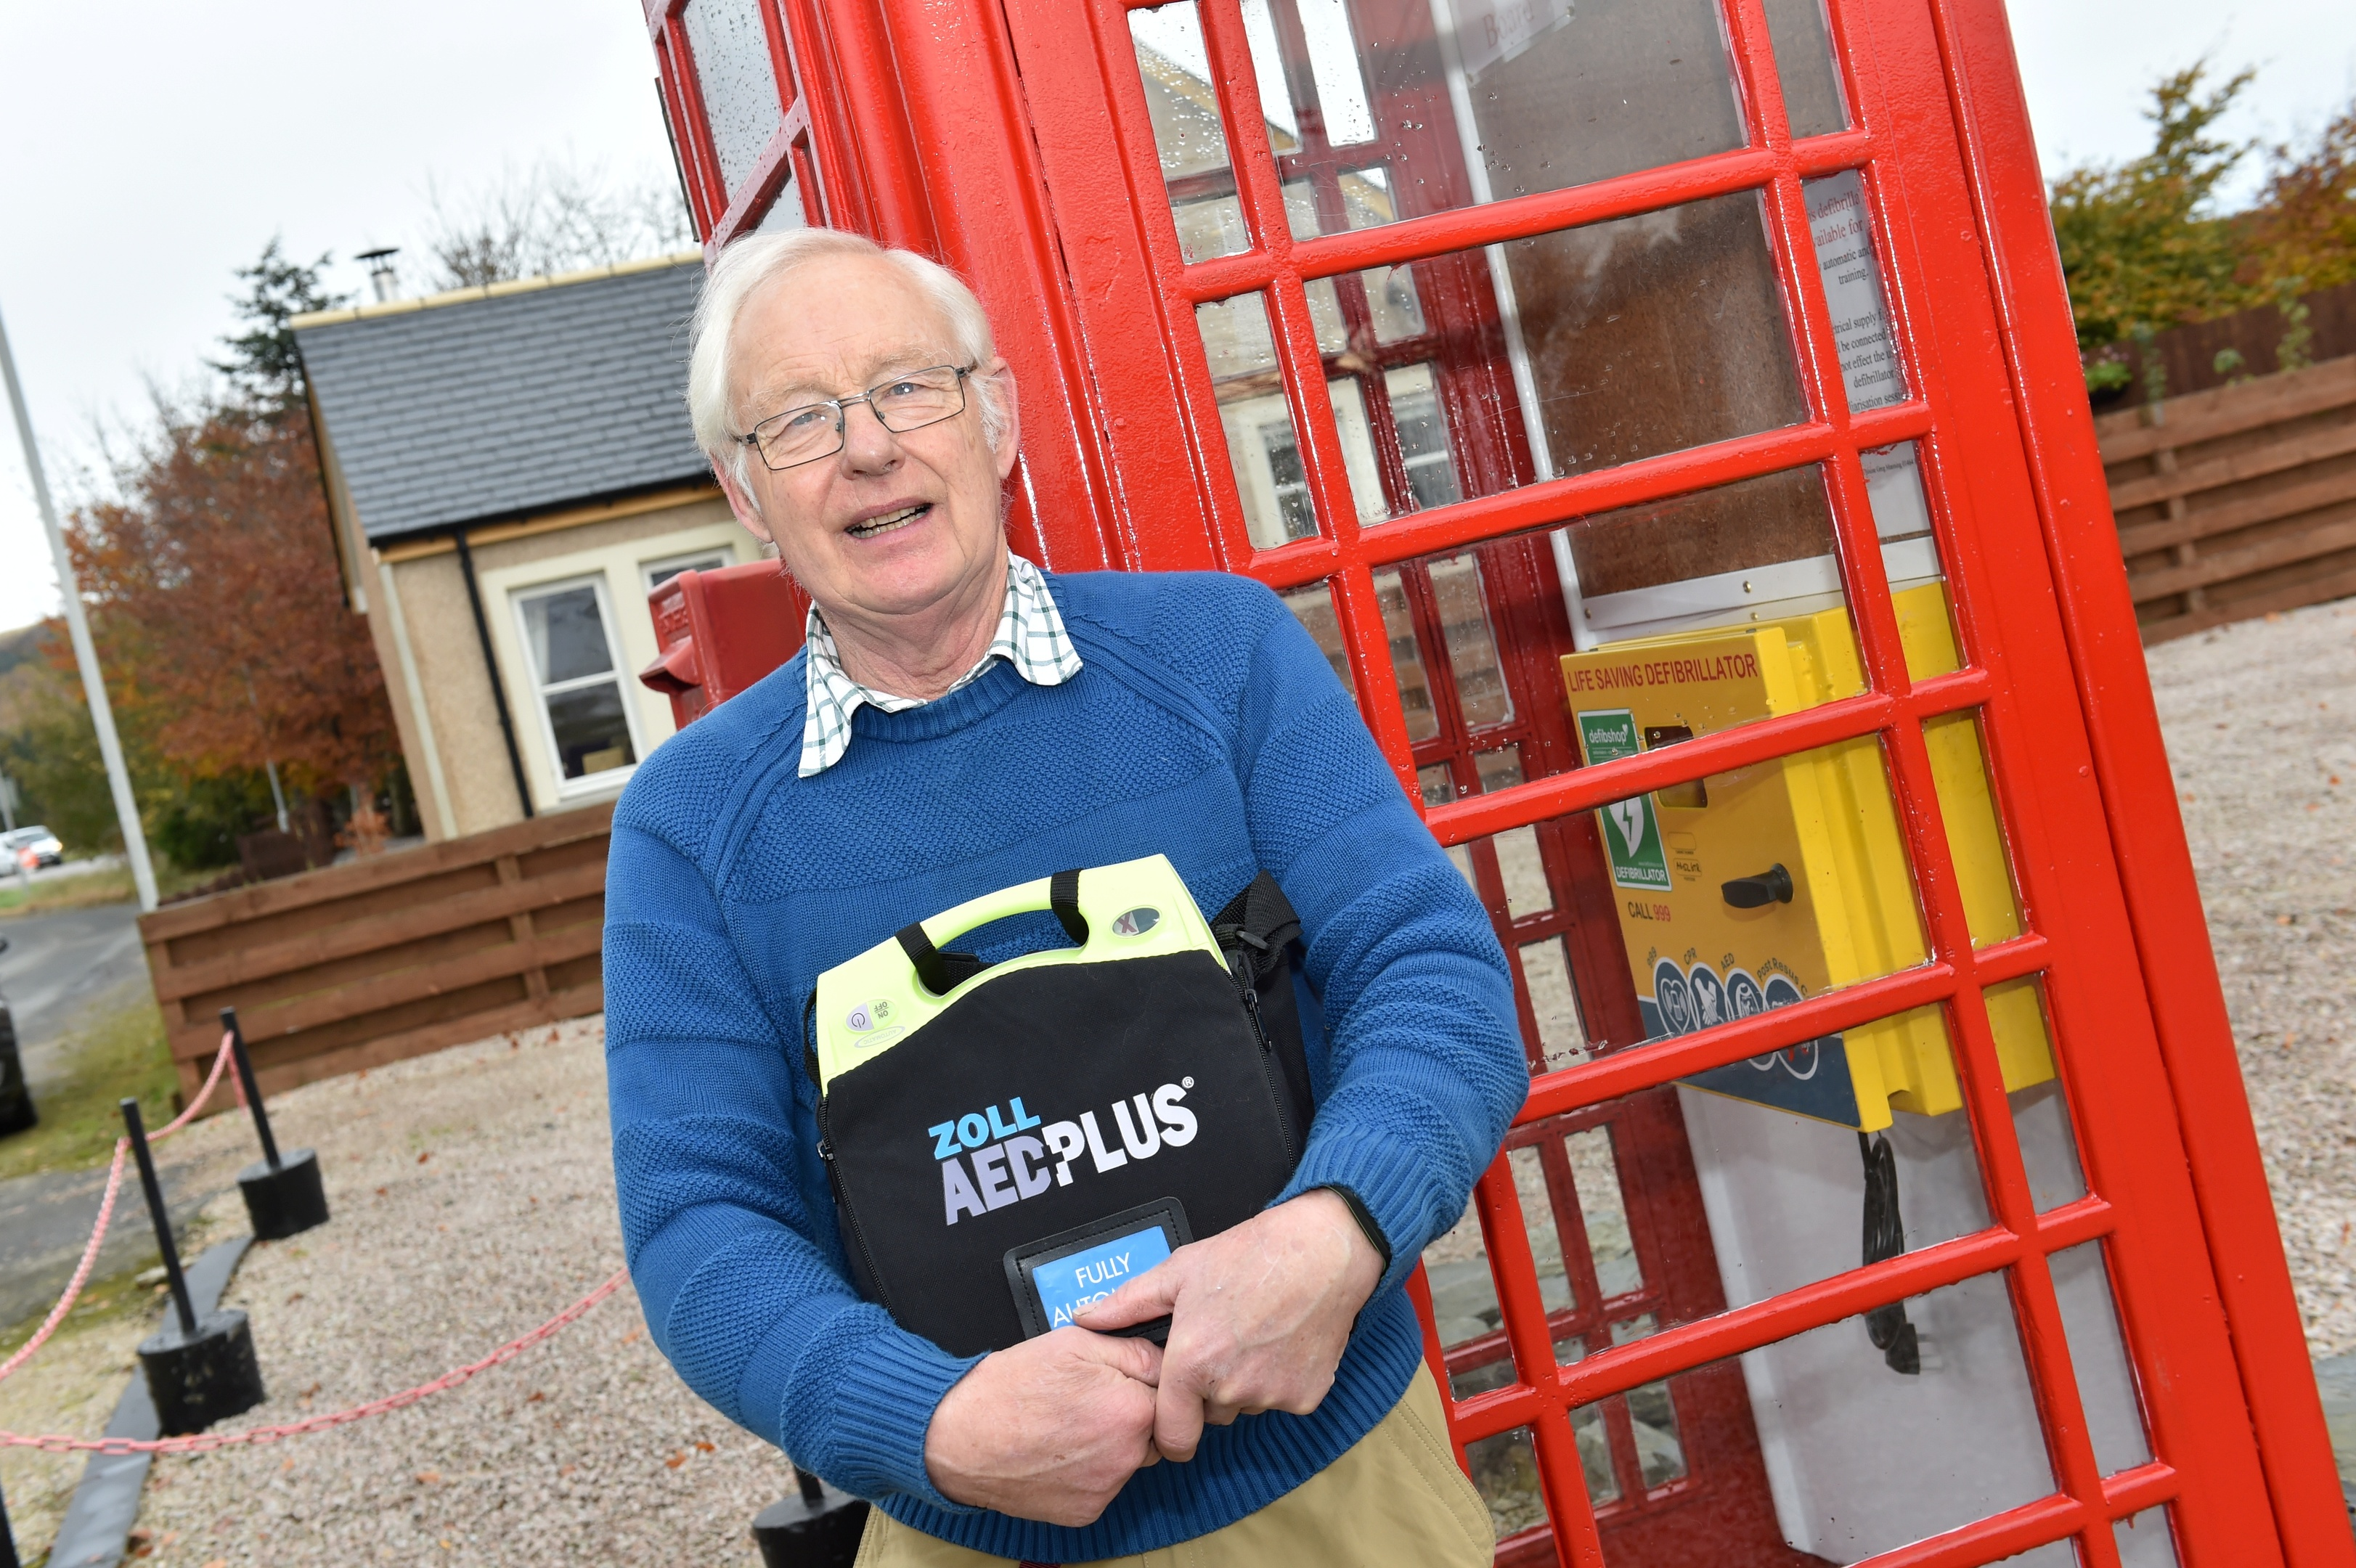 The phone box in Colpy which is now housing a new defibrillator. Greg Manning who restored the phone box with the new device. Picture by Colin Rennie